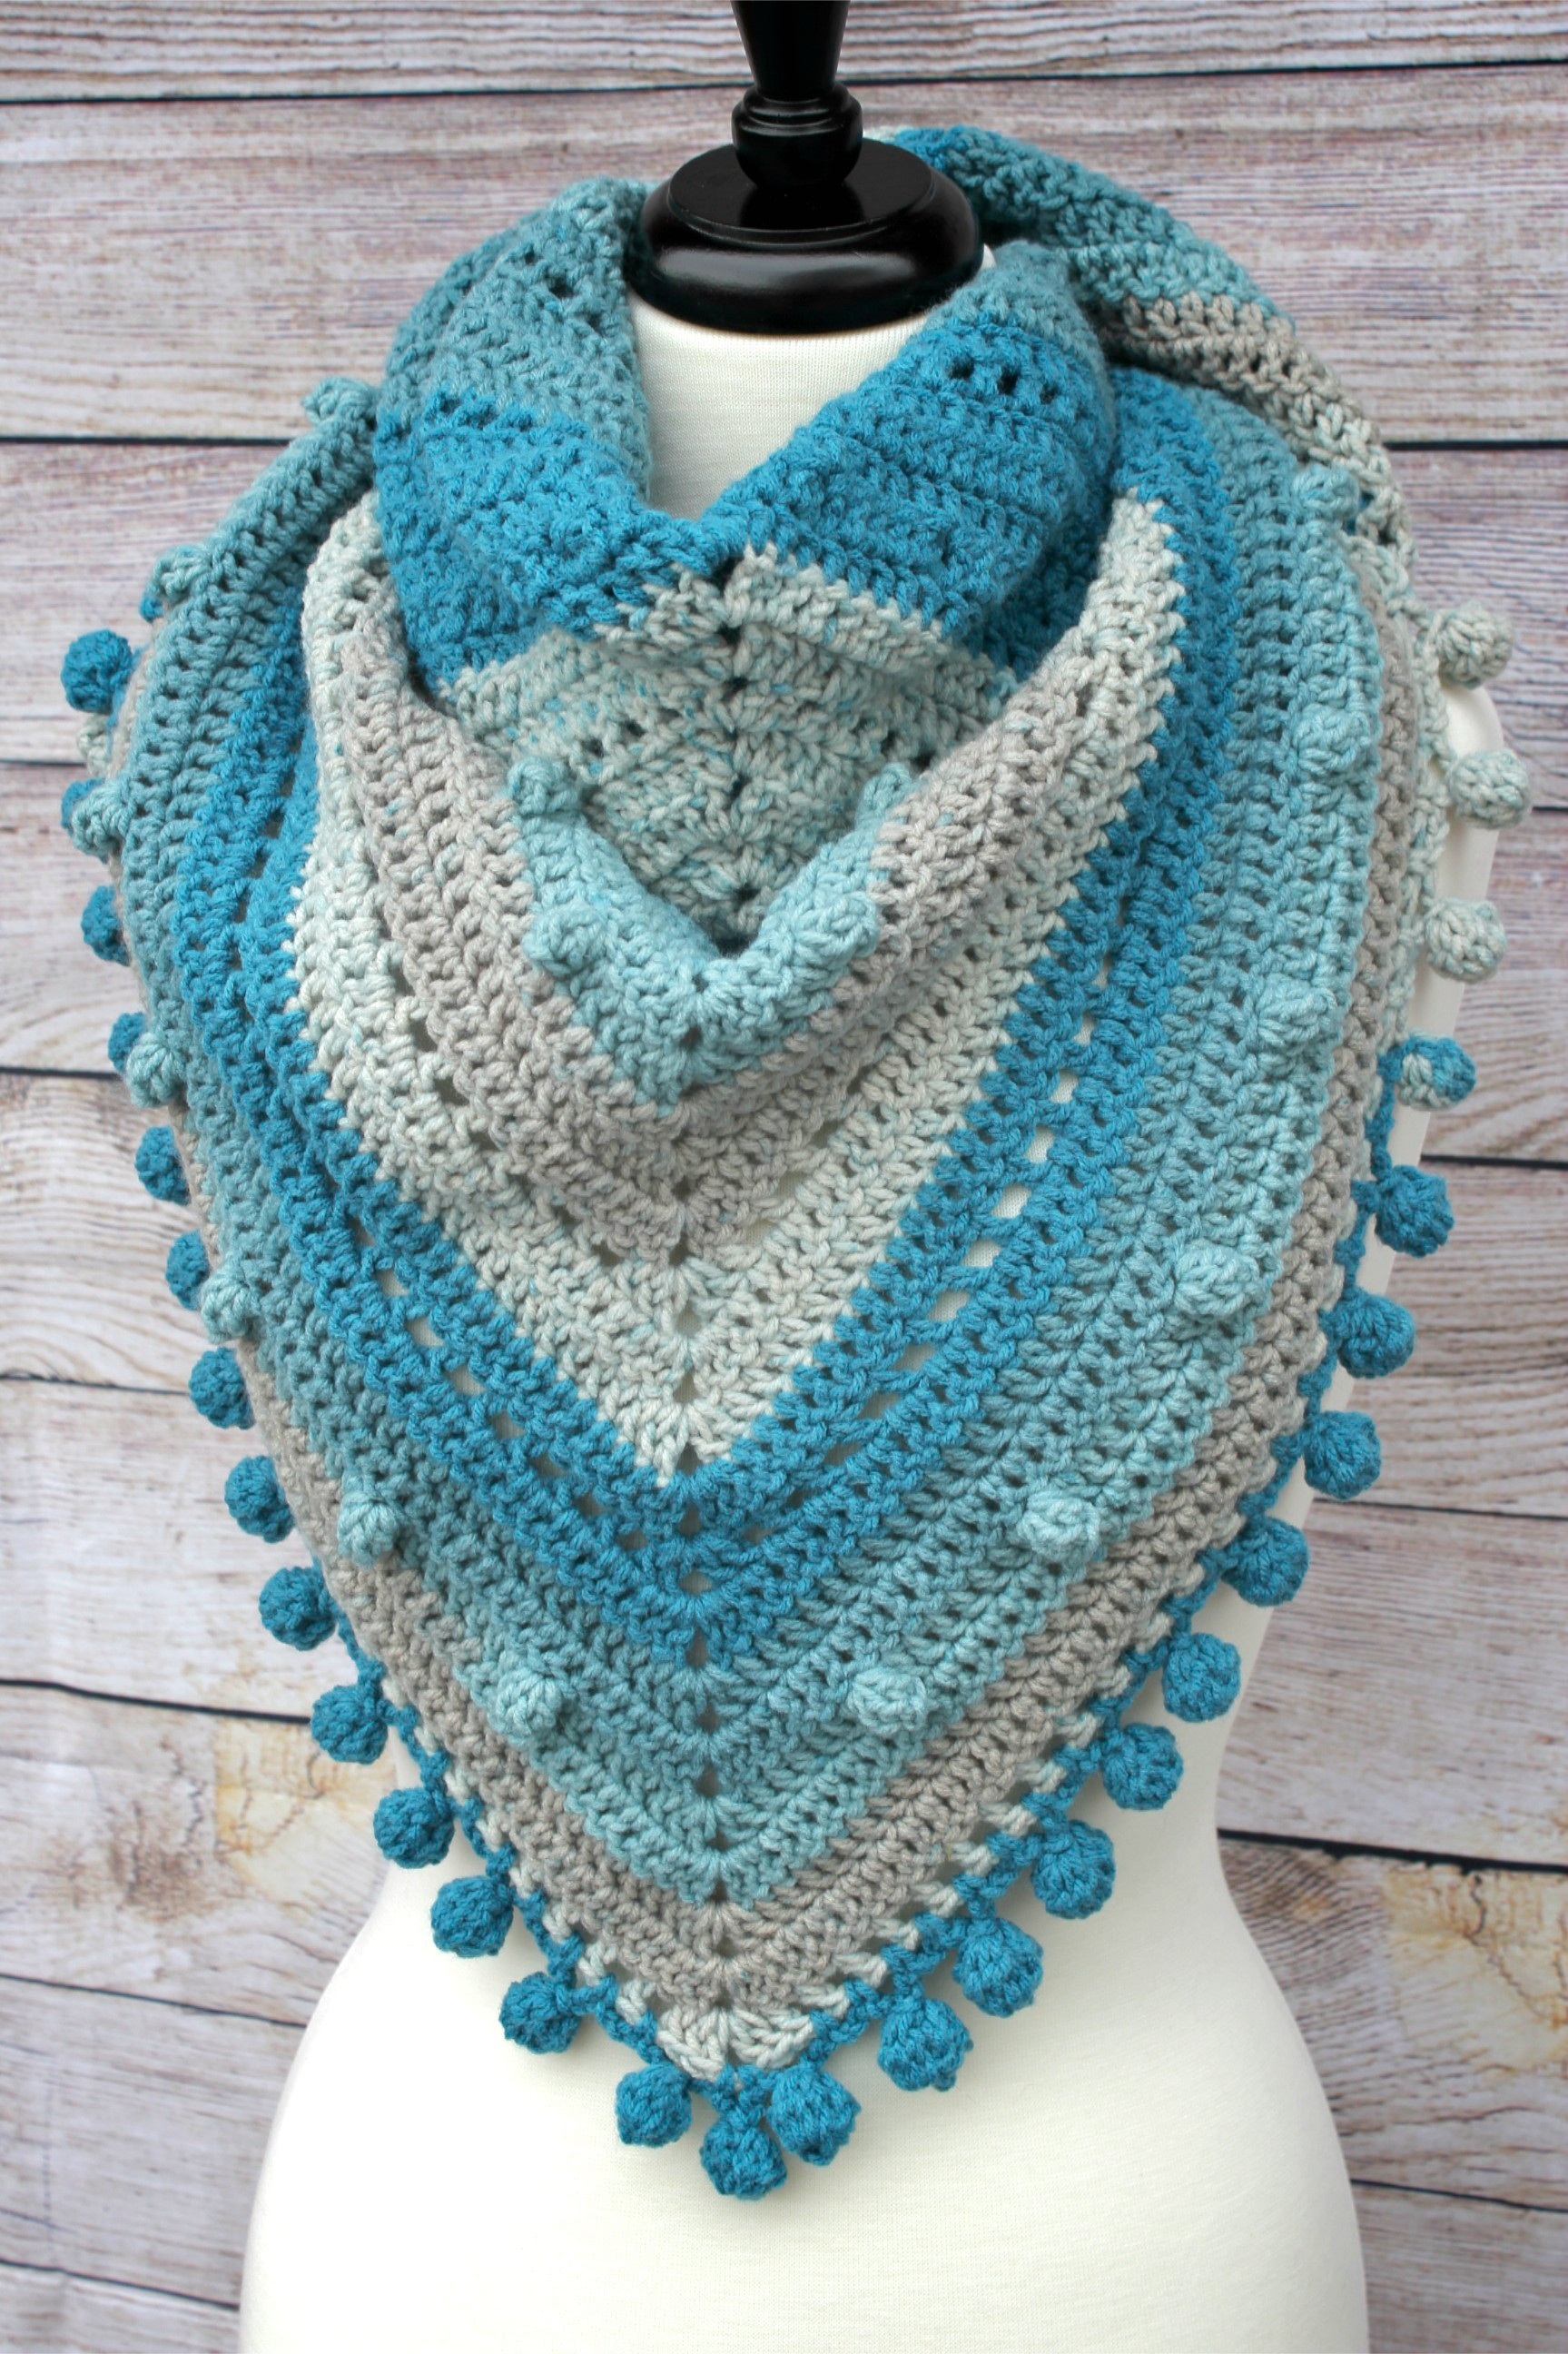 Inspirational Misty Morning Triangle Scarf Shawlette Crochet Pattern Triangle Scarf Crochet Pattern Of Marvelous 44 Photos Triangle Scarf Crochet Pattern